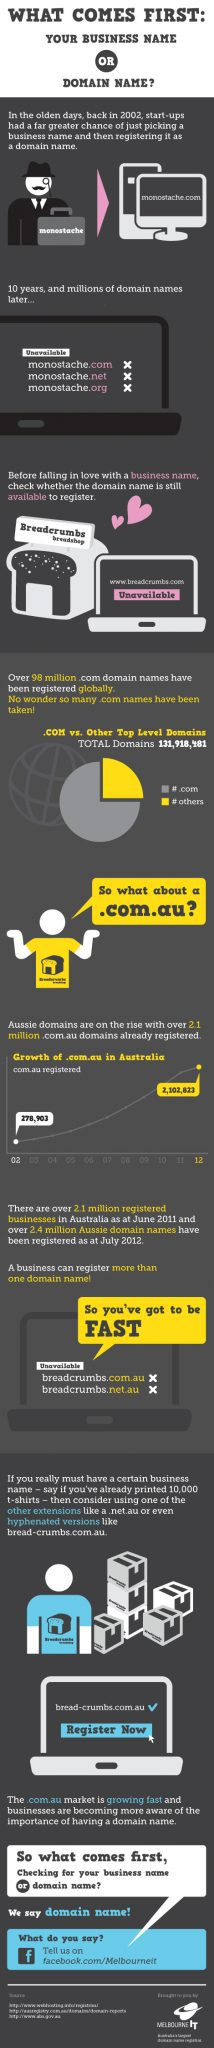 business-name-or-domain-name-first-infographic